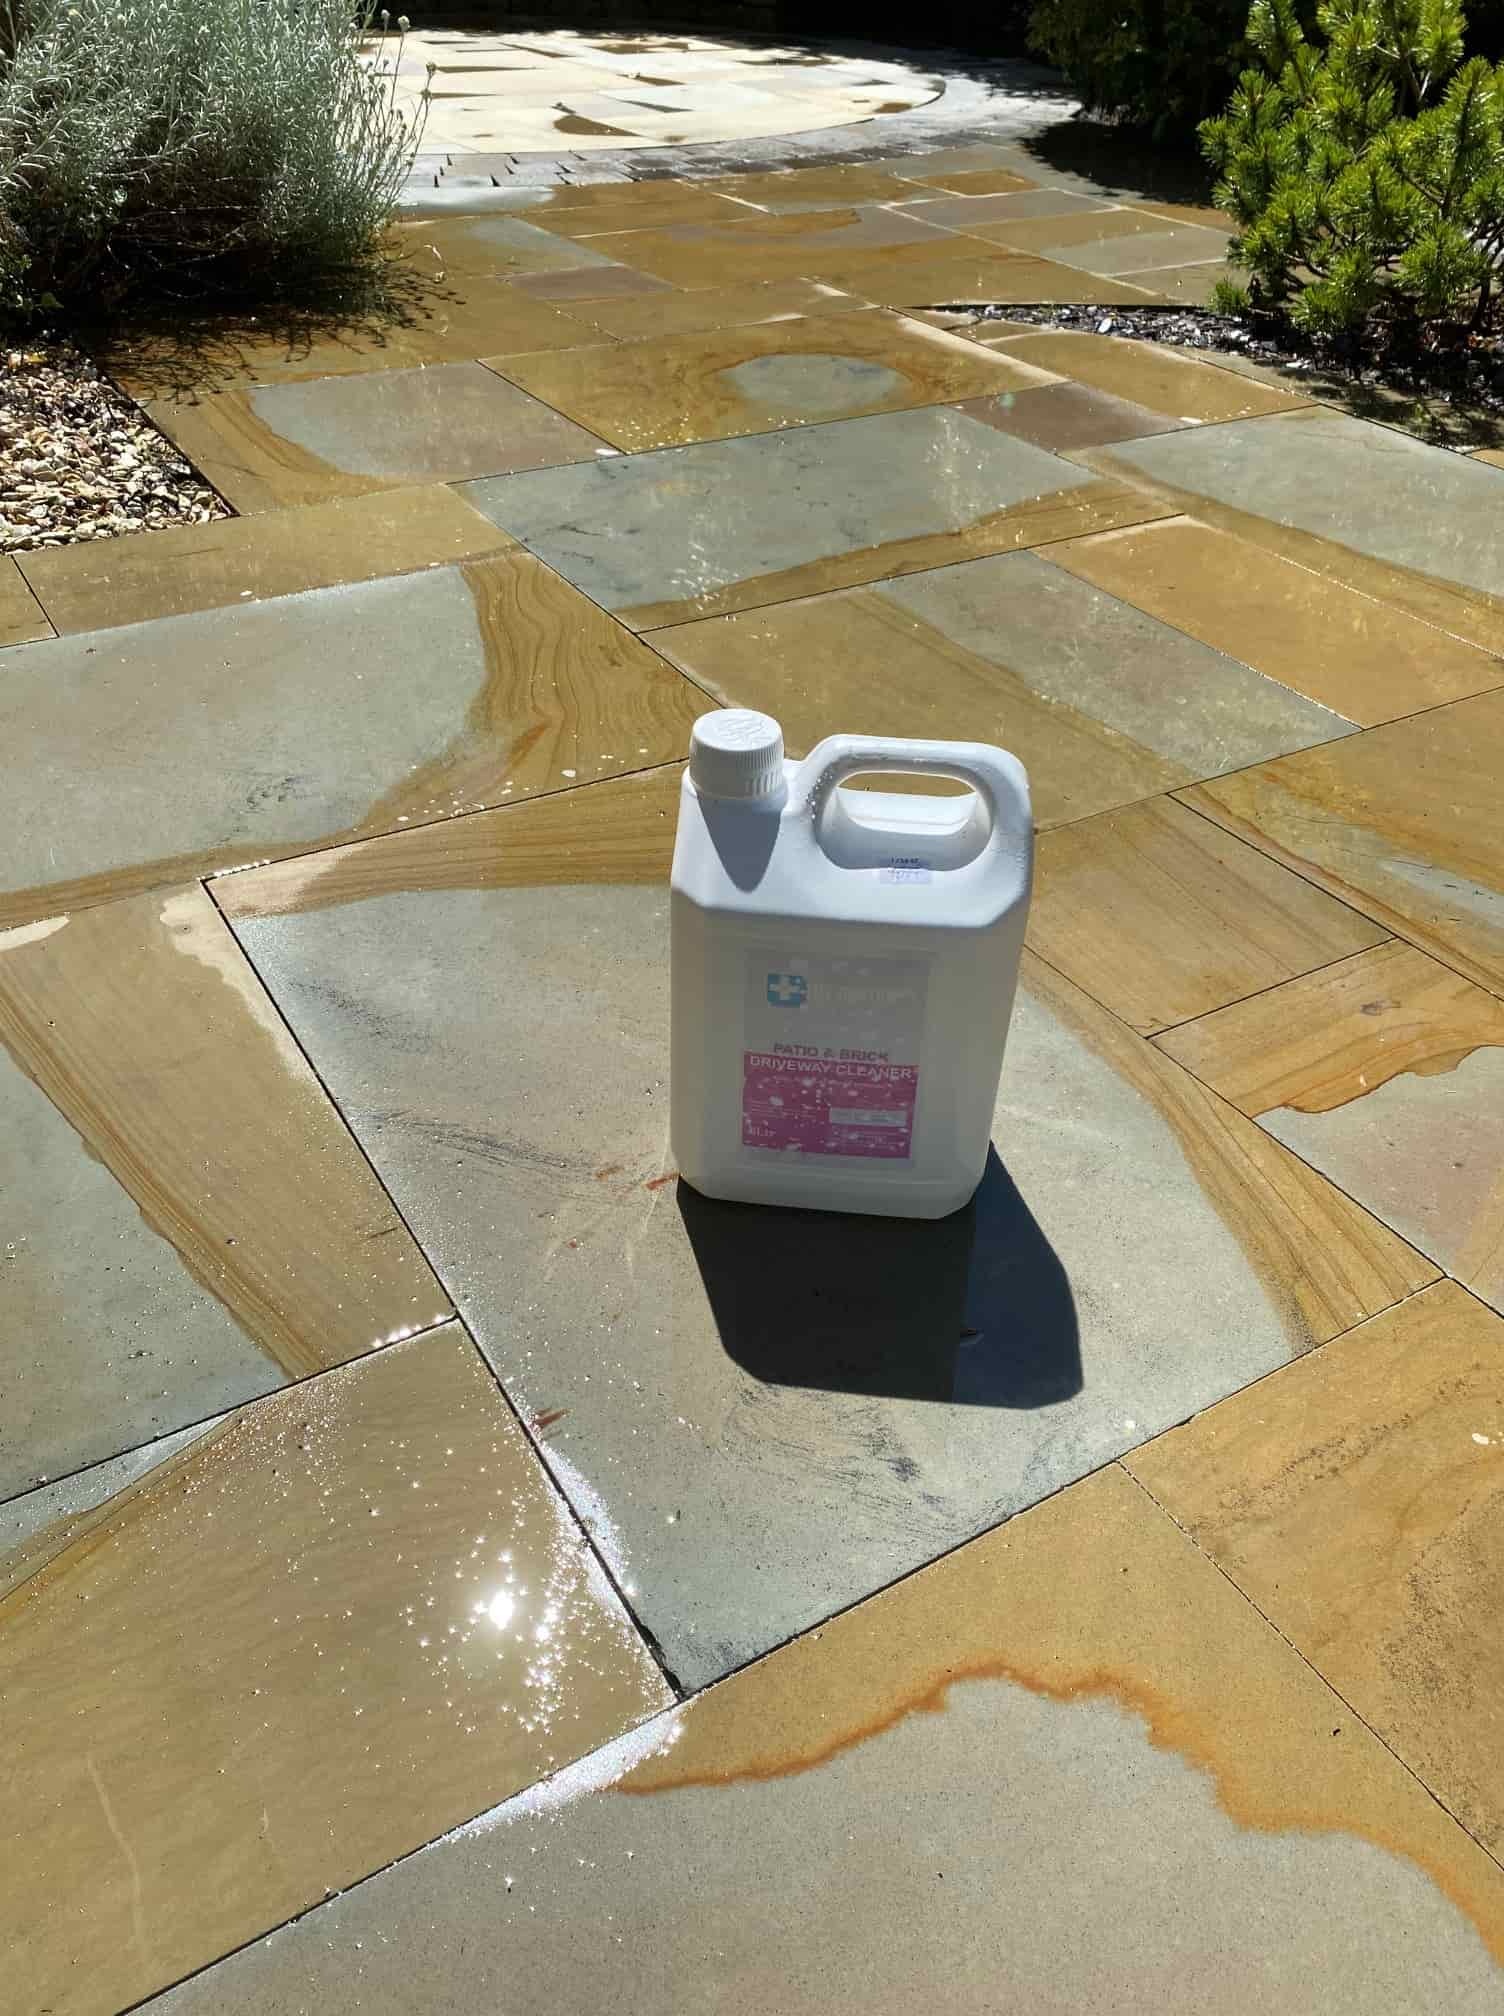 Indian Sandstone Patio After Cleaning in Bolton-Le-Sands